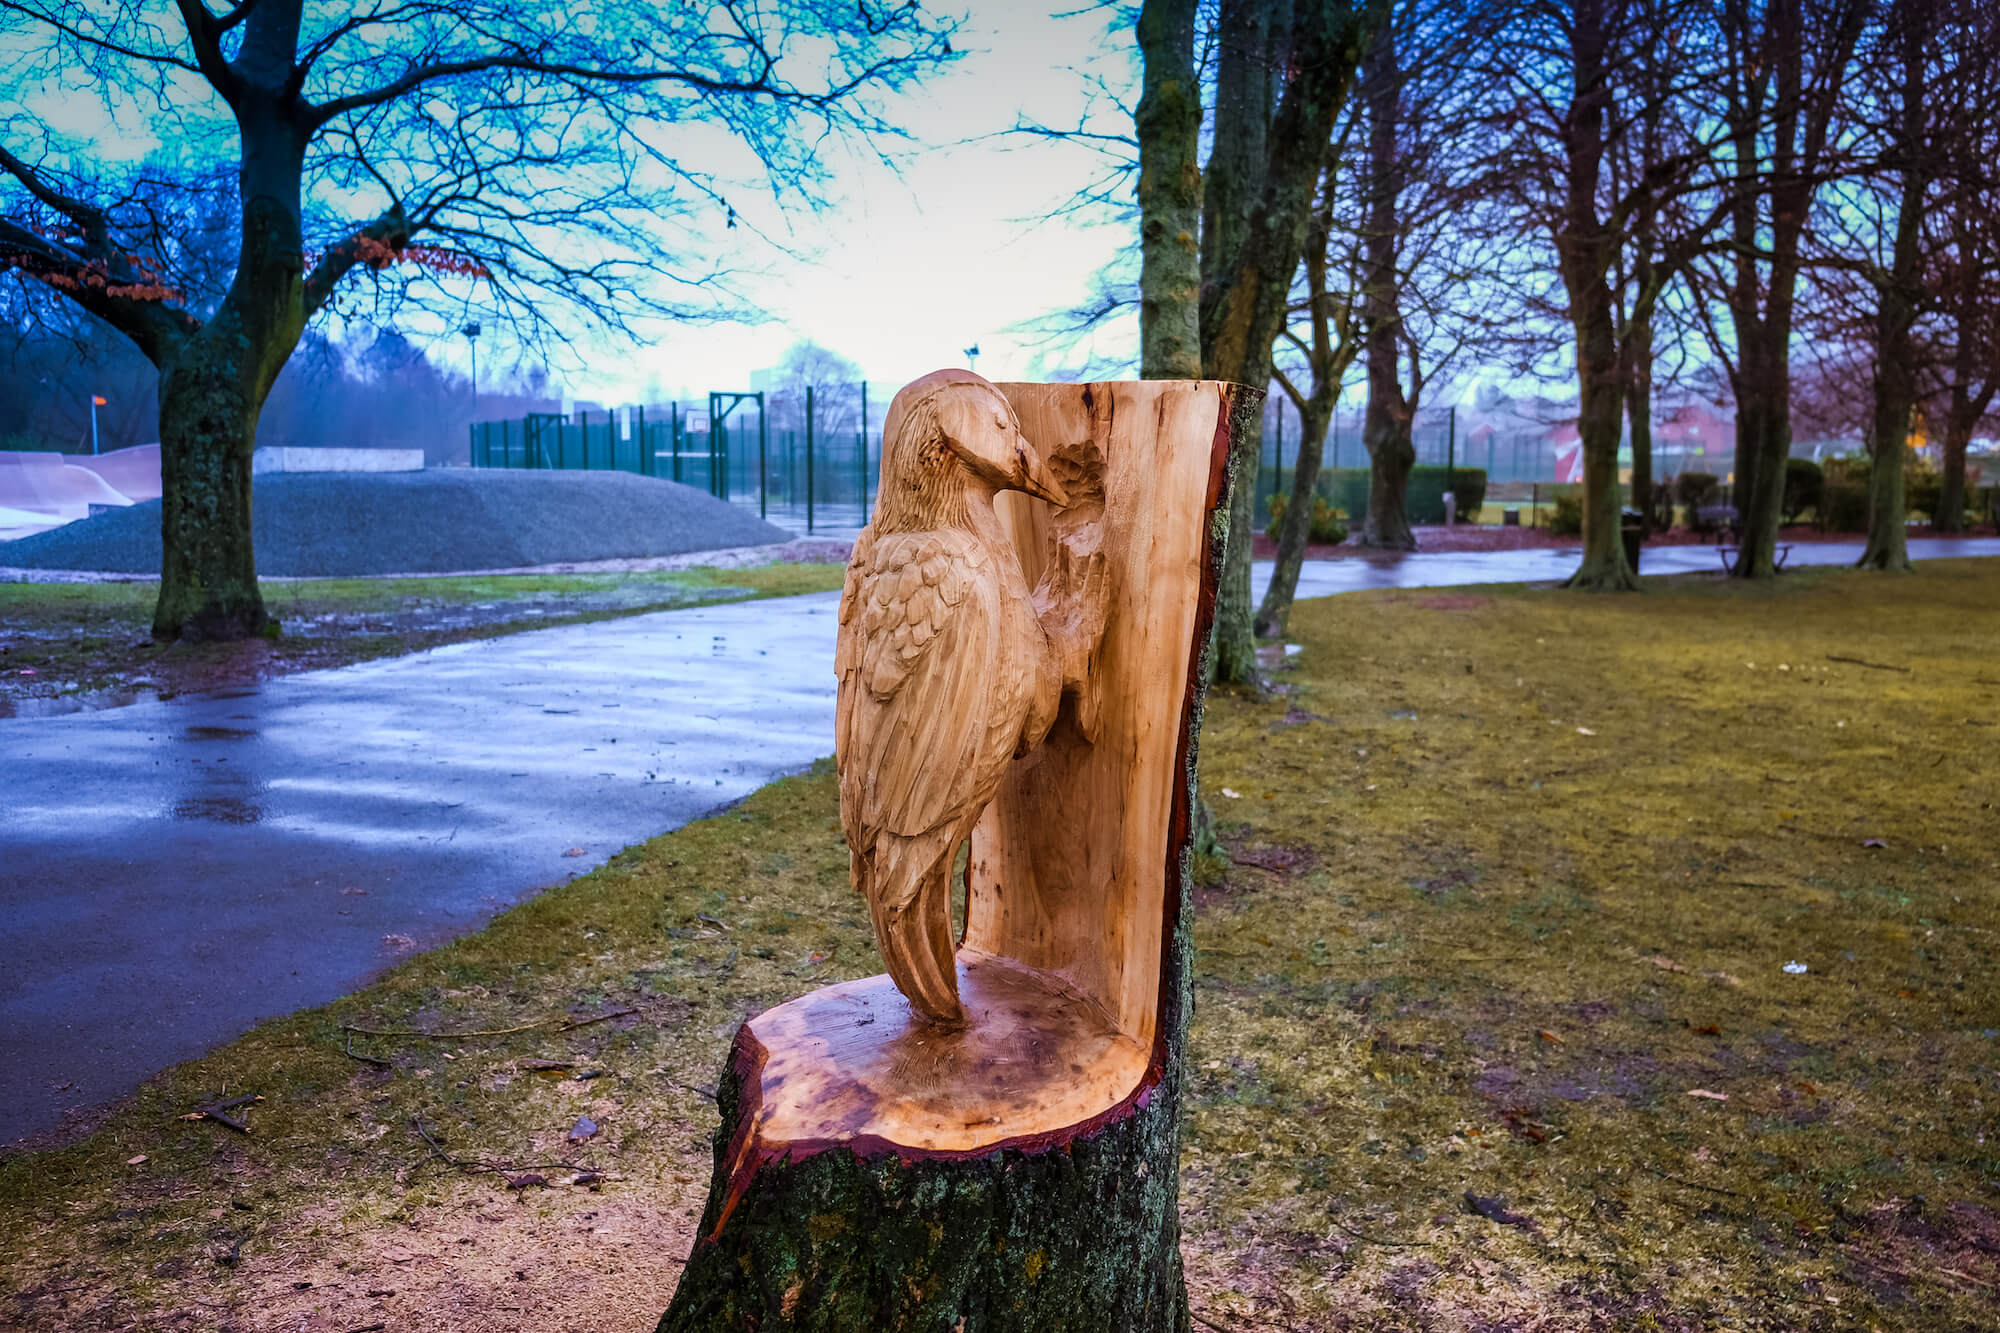 The Friends of Hednesford Park